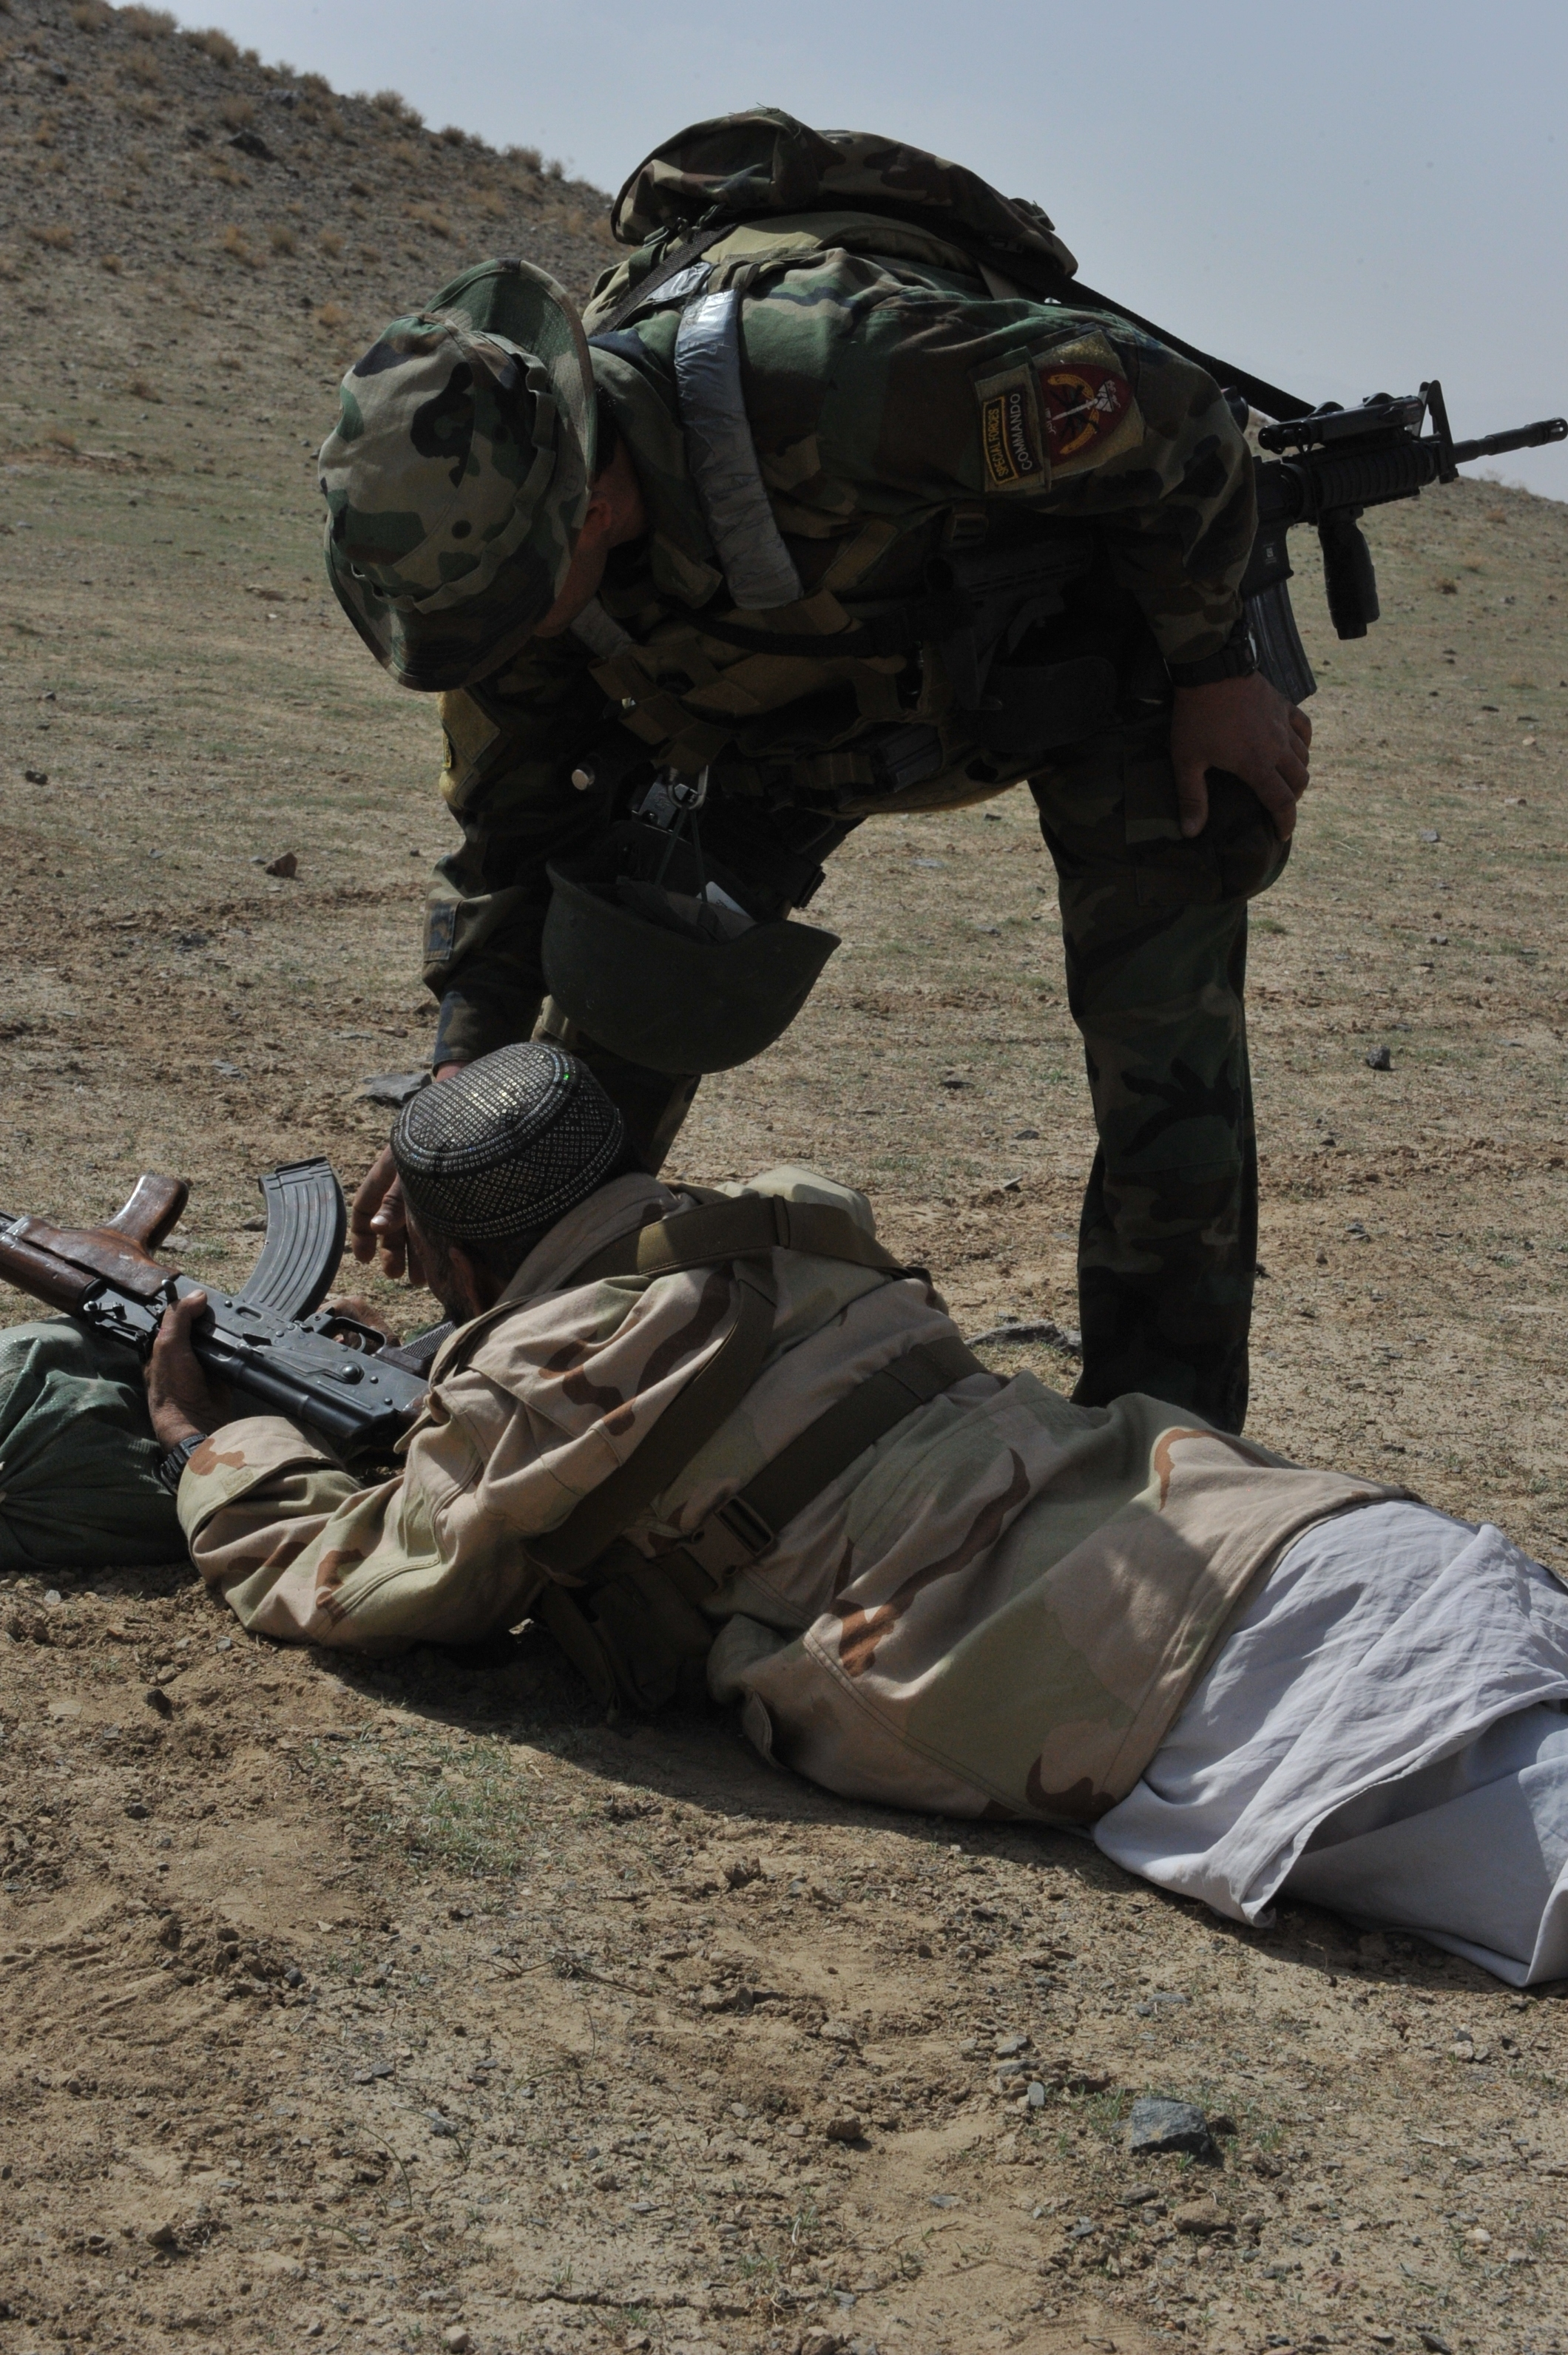 File:An Afghan National Army Special Forces soldier, top ... Army Special Forces Weapons